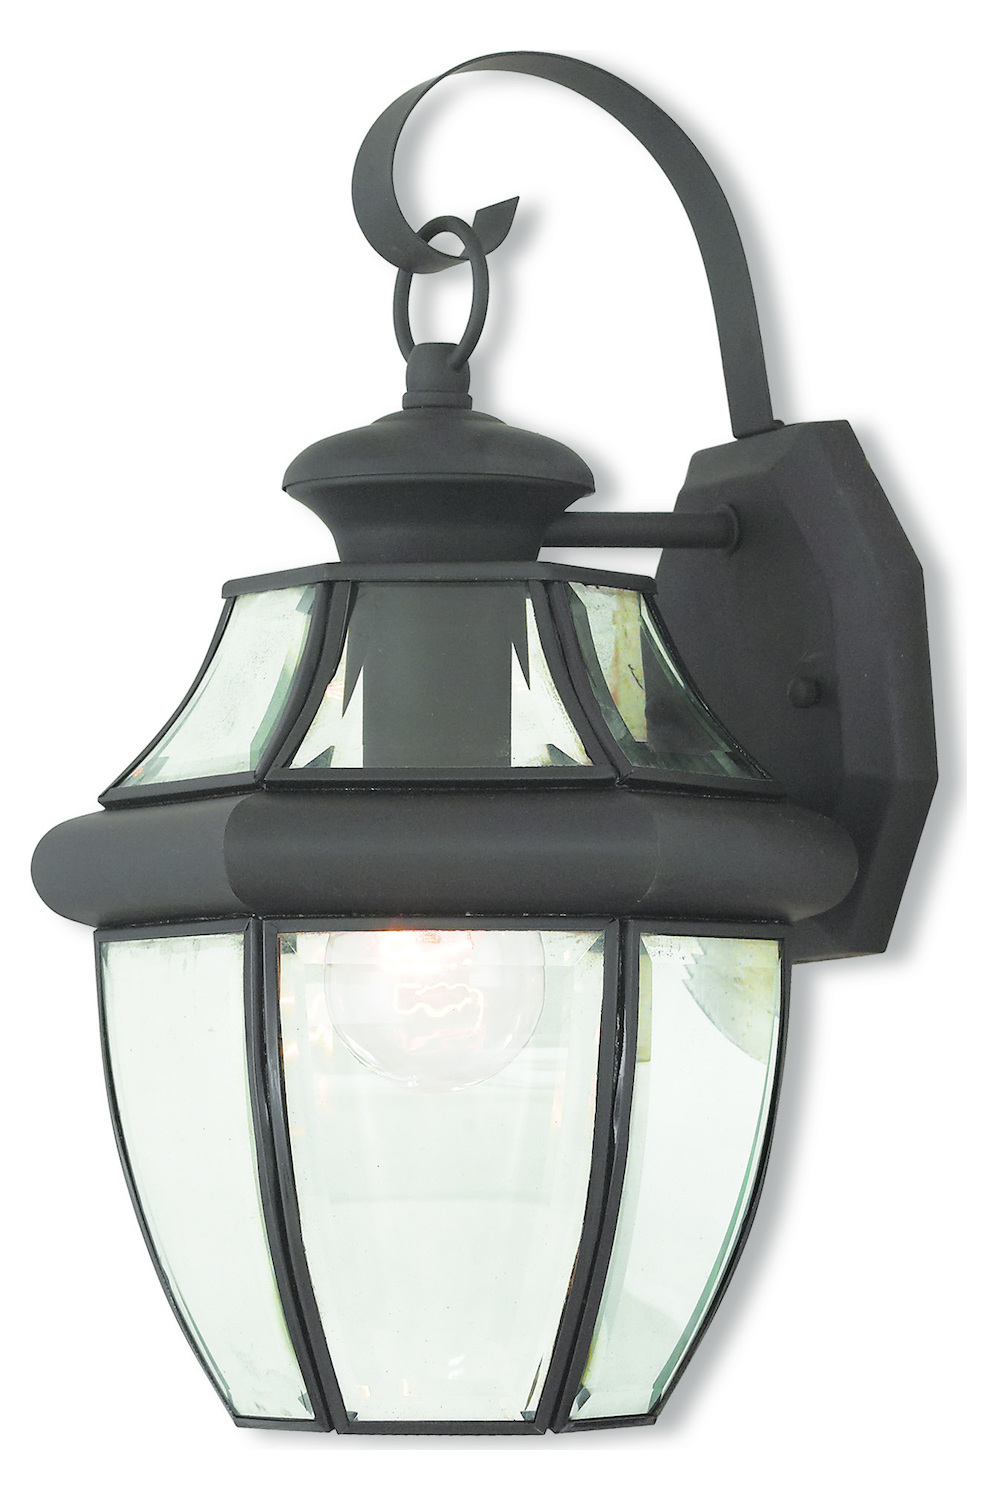 Livex Lighting Outdoor Wall Lantern Bronze 20282 07 From